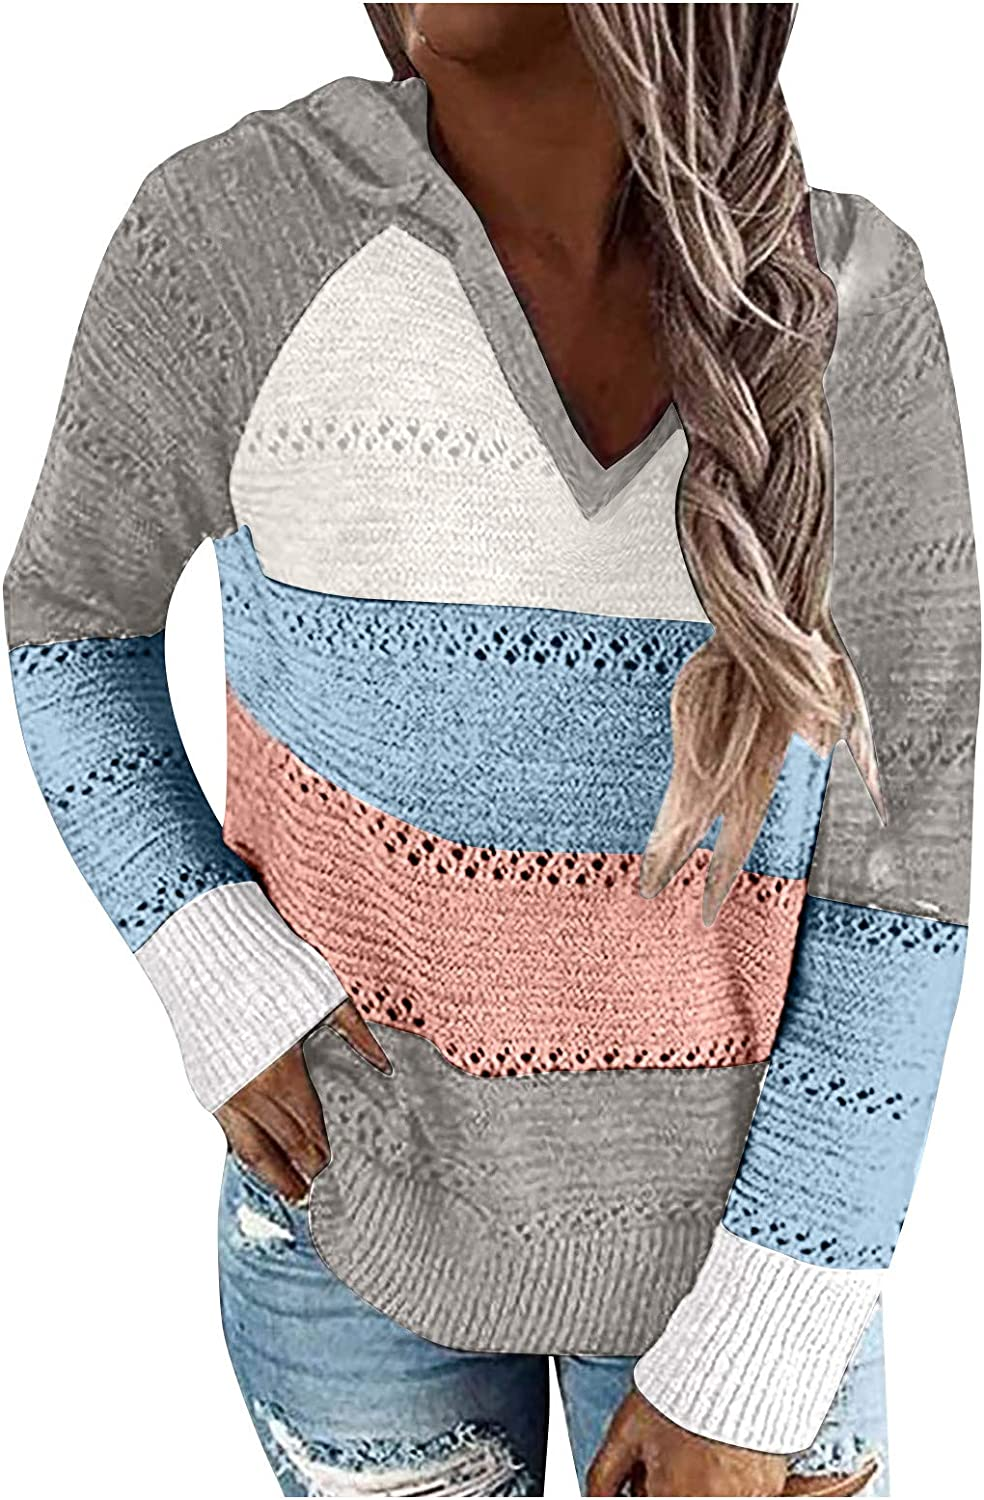 Women's Casual Stripe Hooded Sweater Color Block Patchwork V-Neck Long Sleeve Knitted Hoodies Oversized Blouse Tops